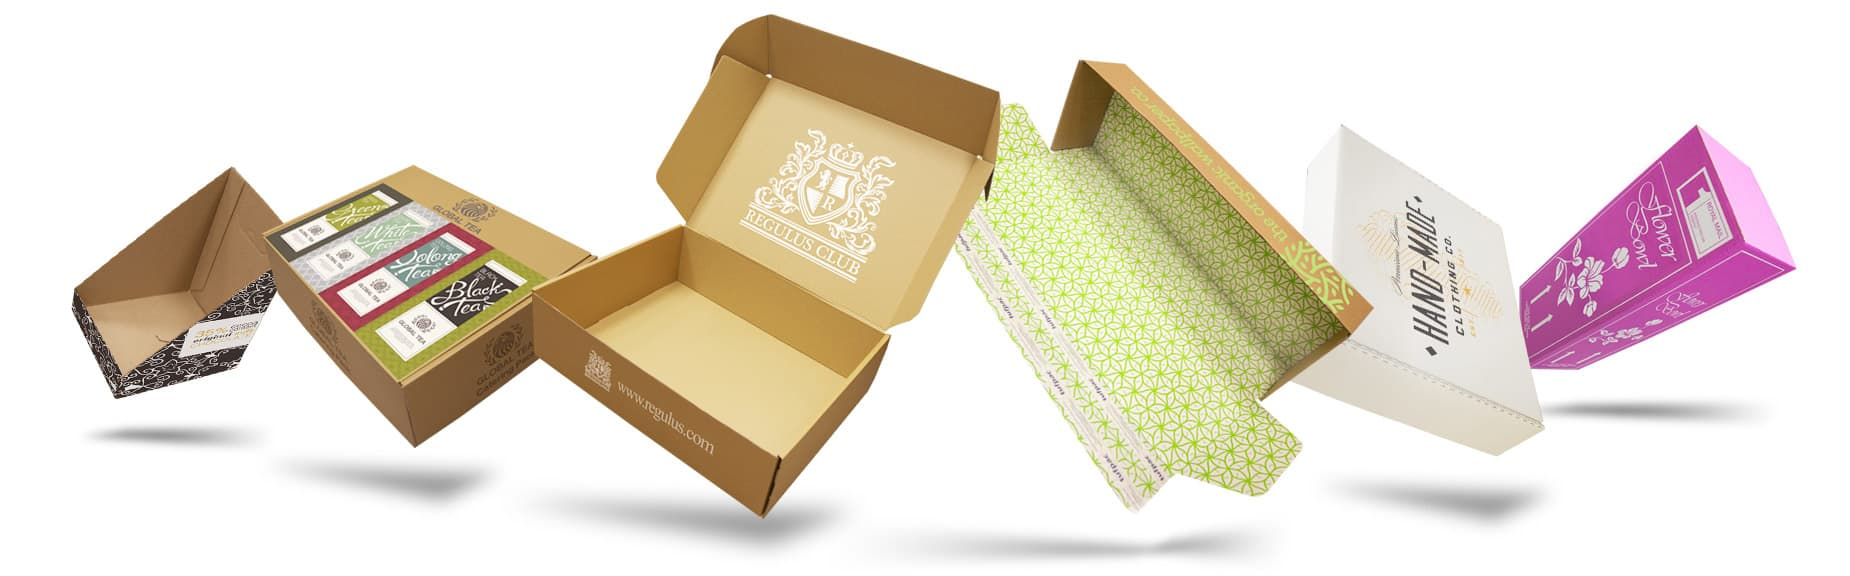 Diamond Box Manufacturers of packaging and cardboard boxes